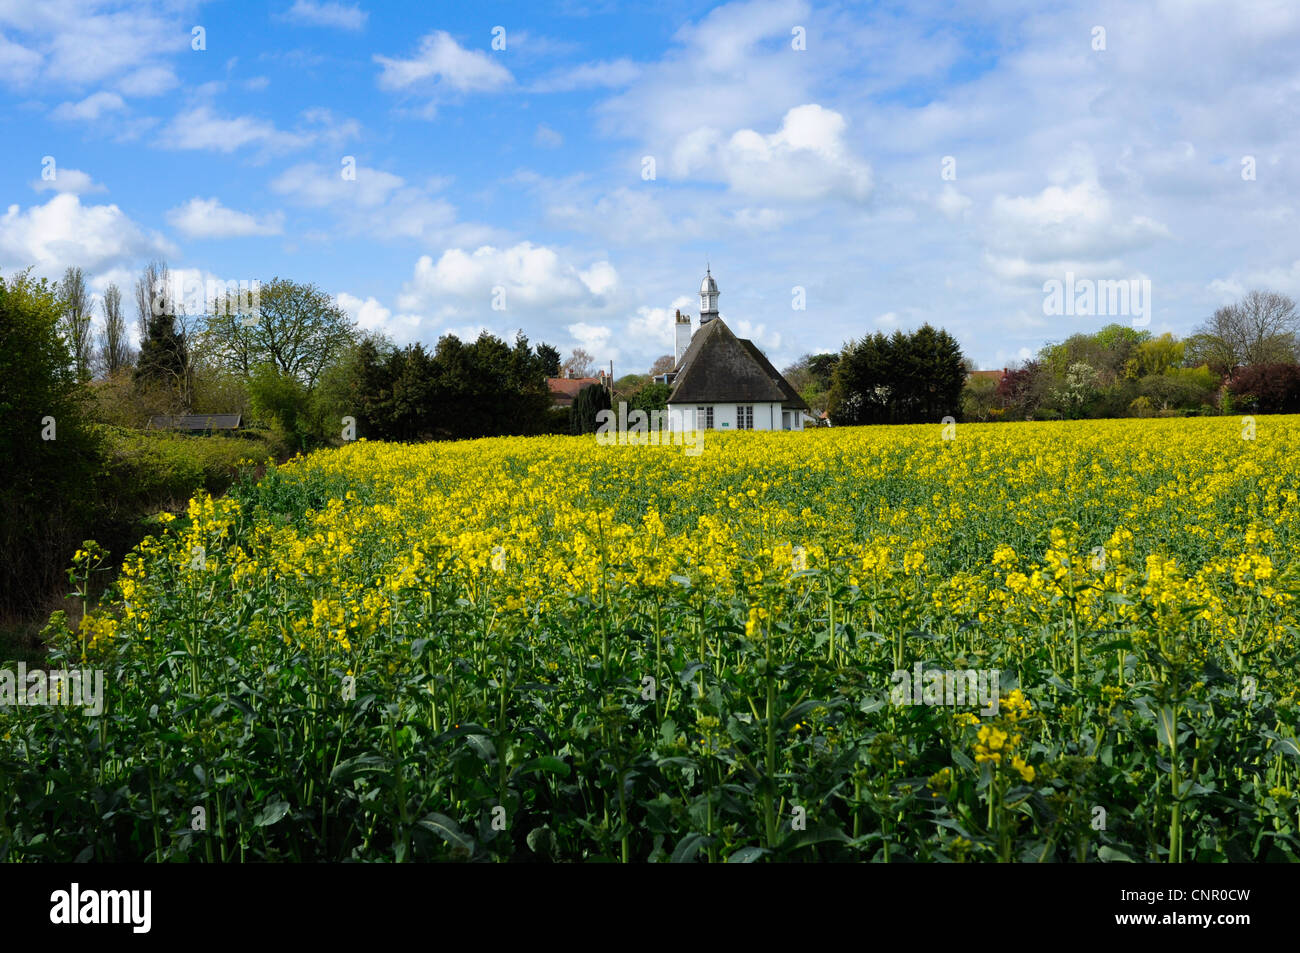 an-oil-seed-rape-field-on-the-outskirts-